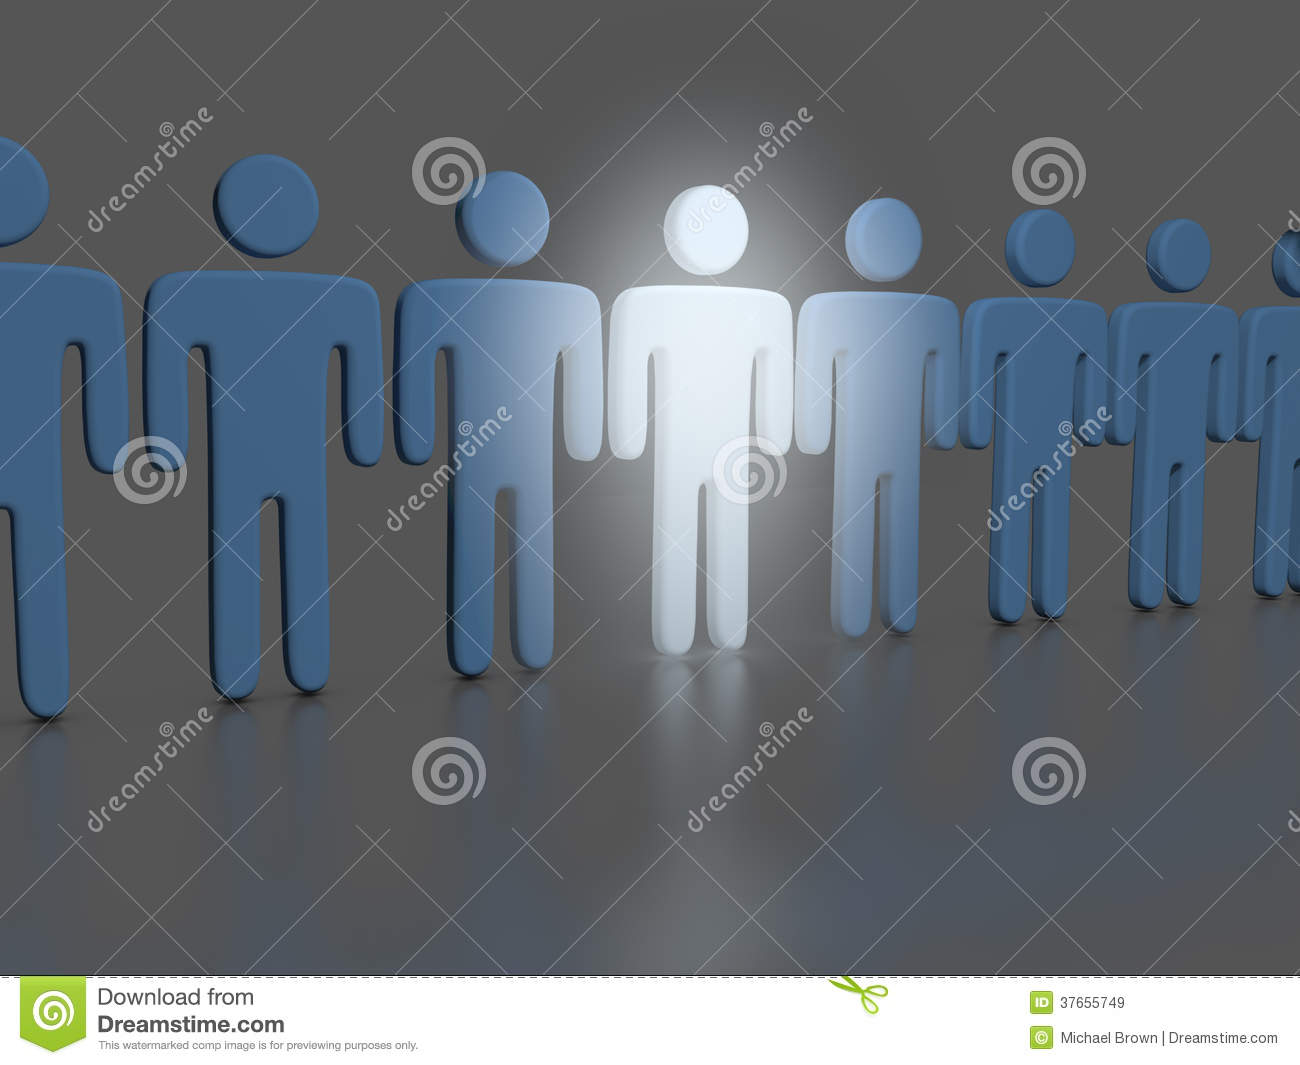 Choose One Bright Person In People Line Royalty Free Stock